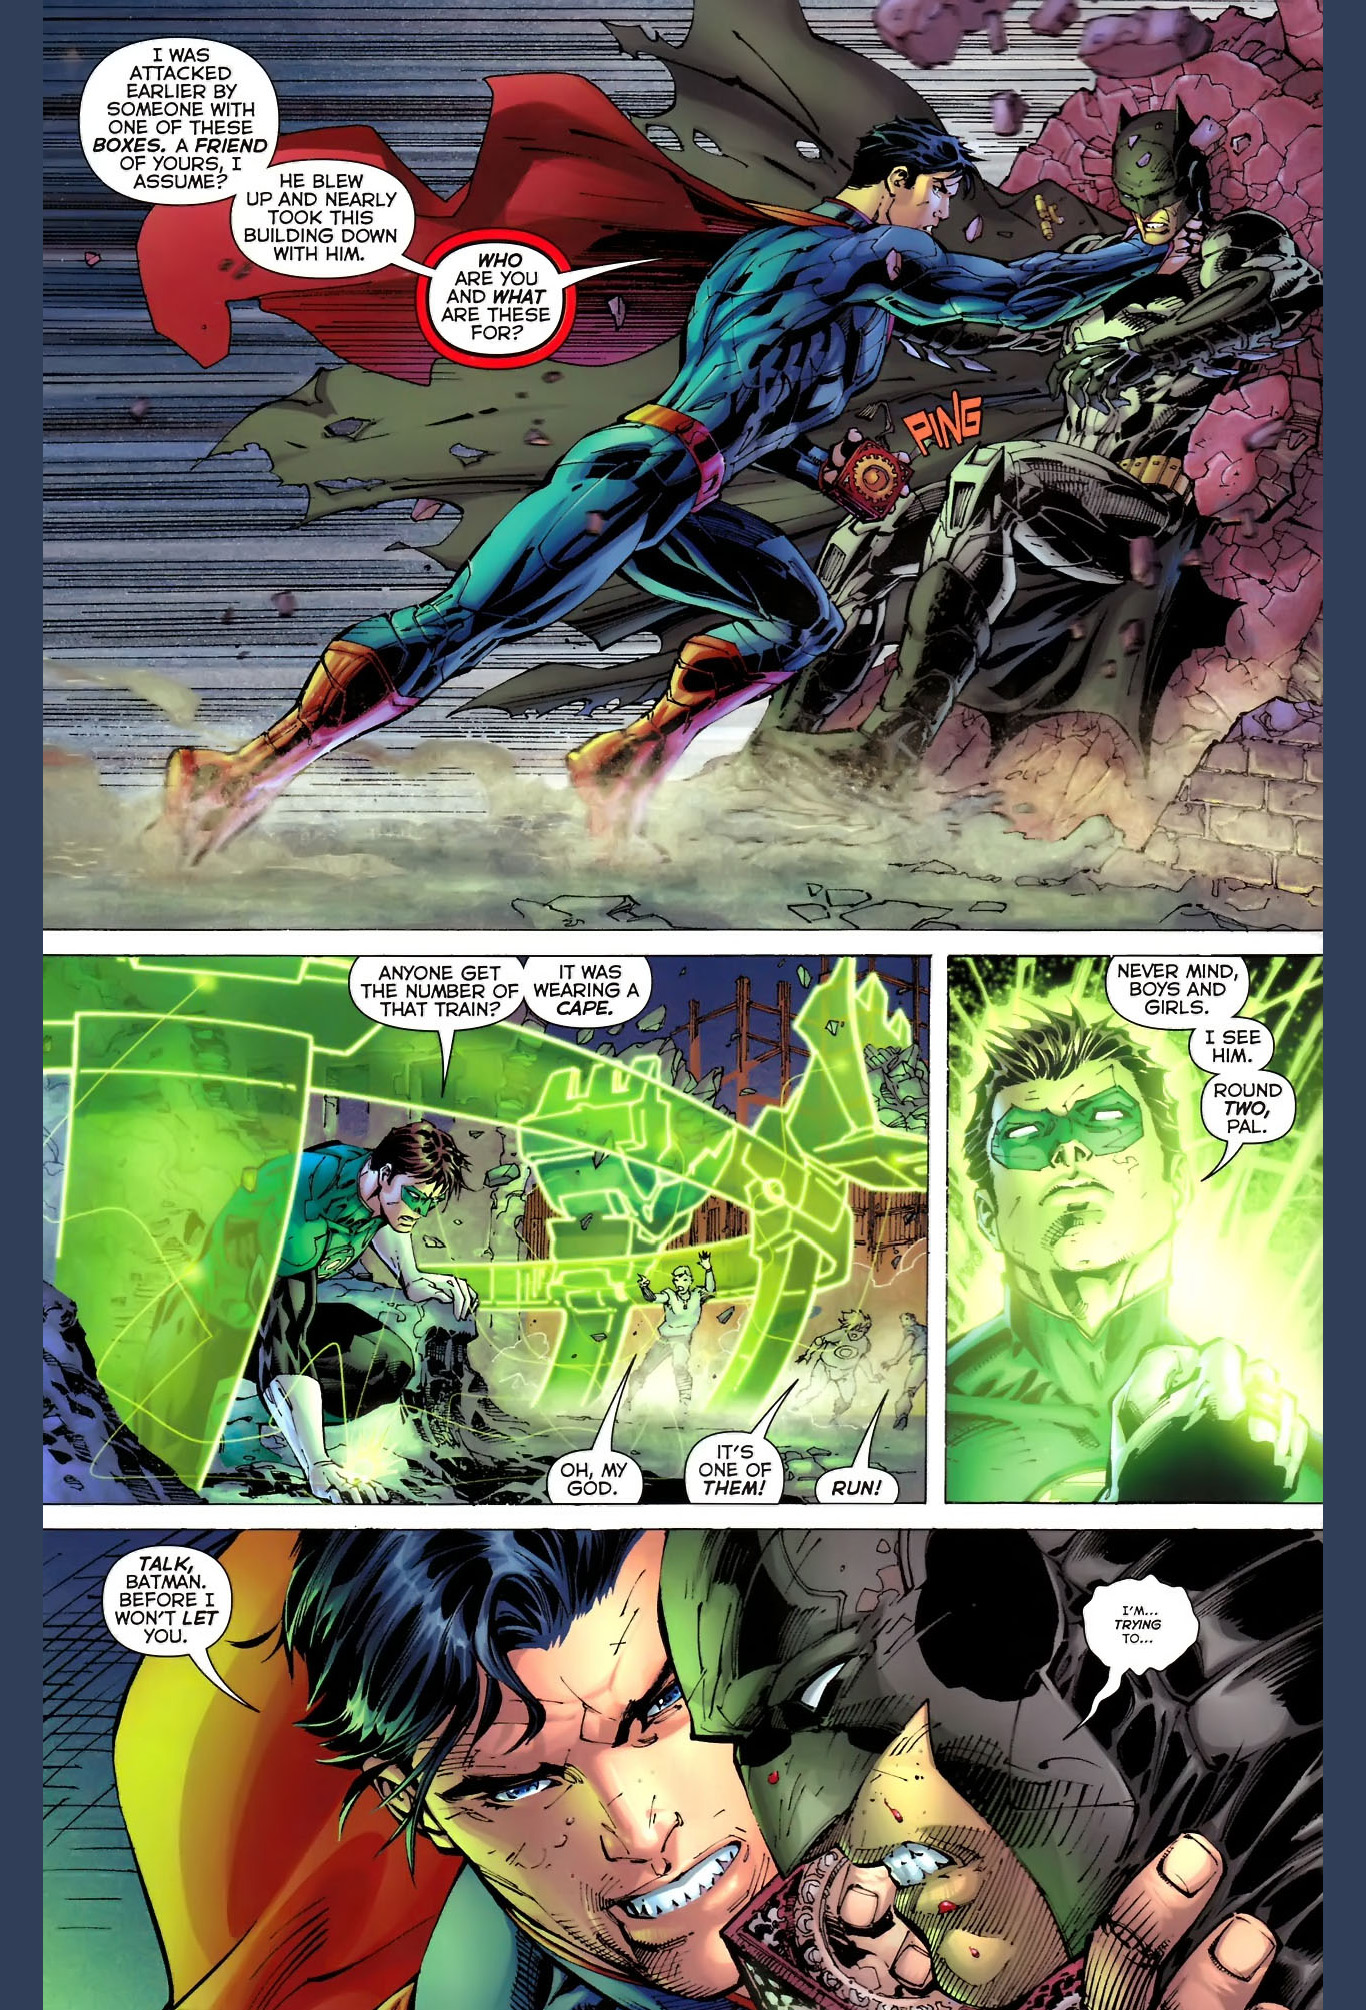 superman and batman's first meeting (new 52)